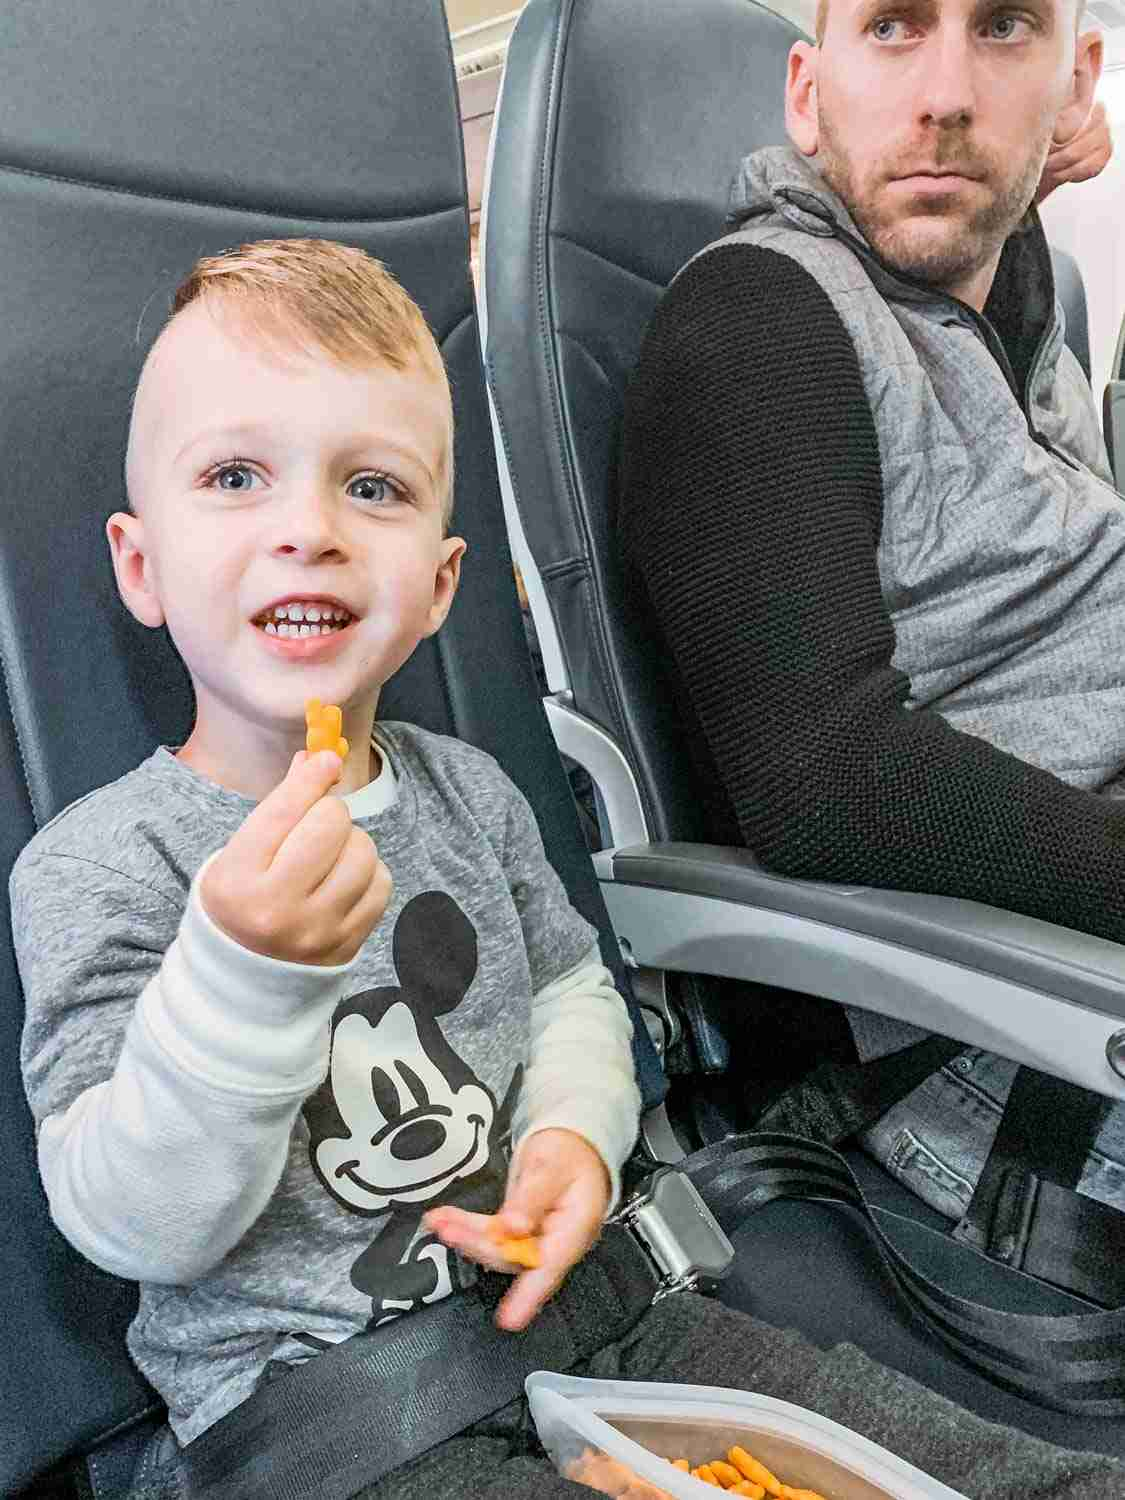 Little boy sitting on plane excited to travel while dad looks unamused about family trip